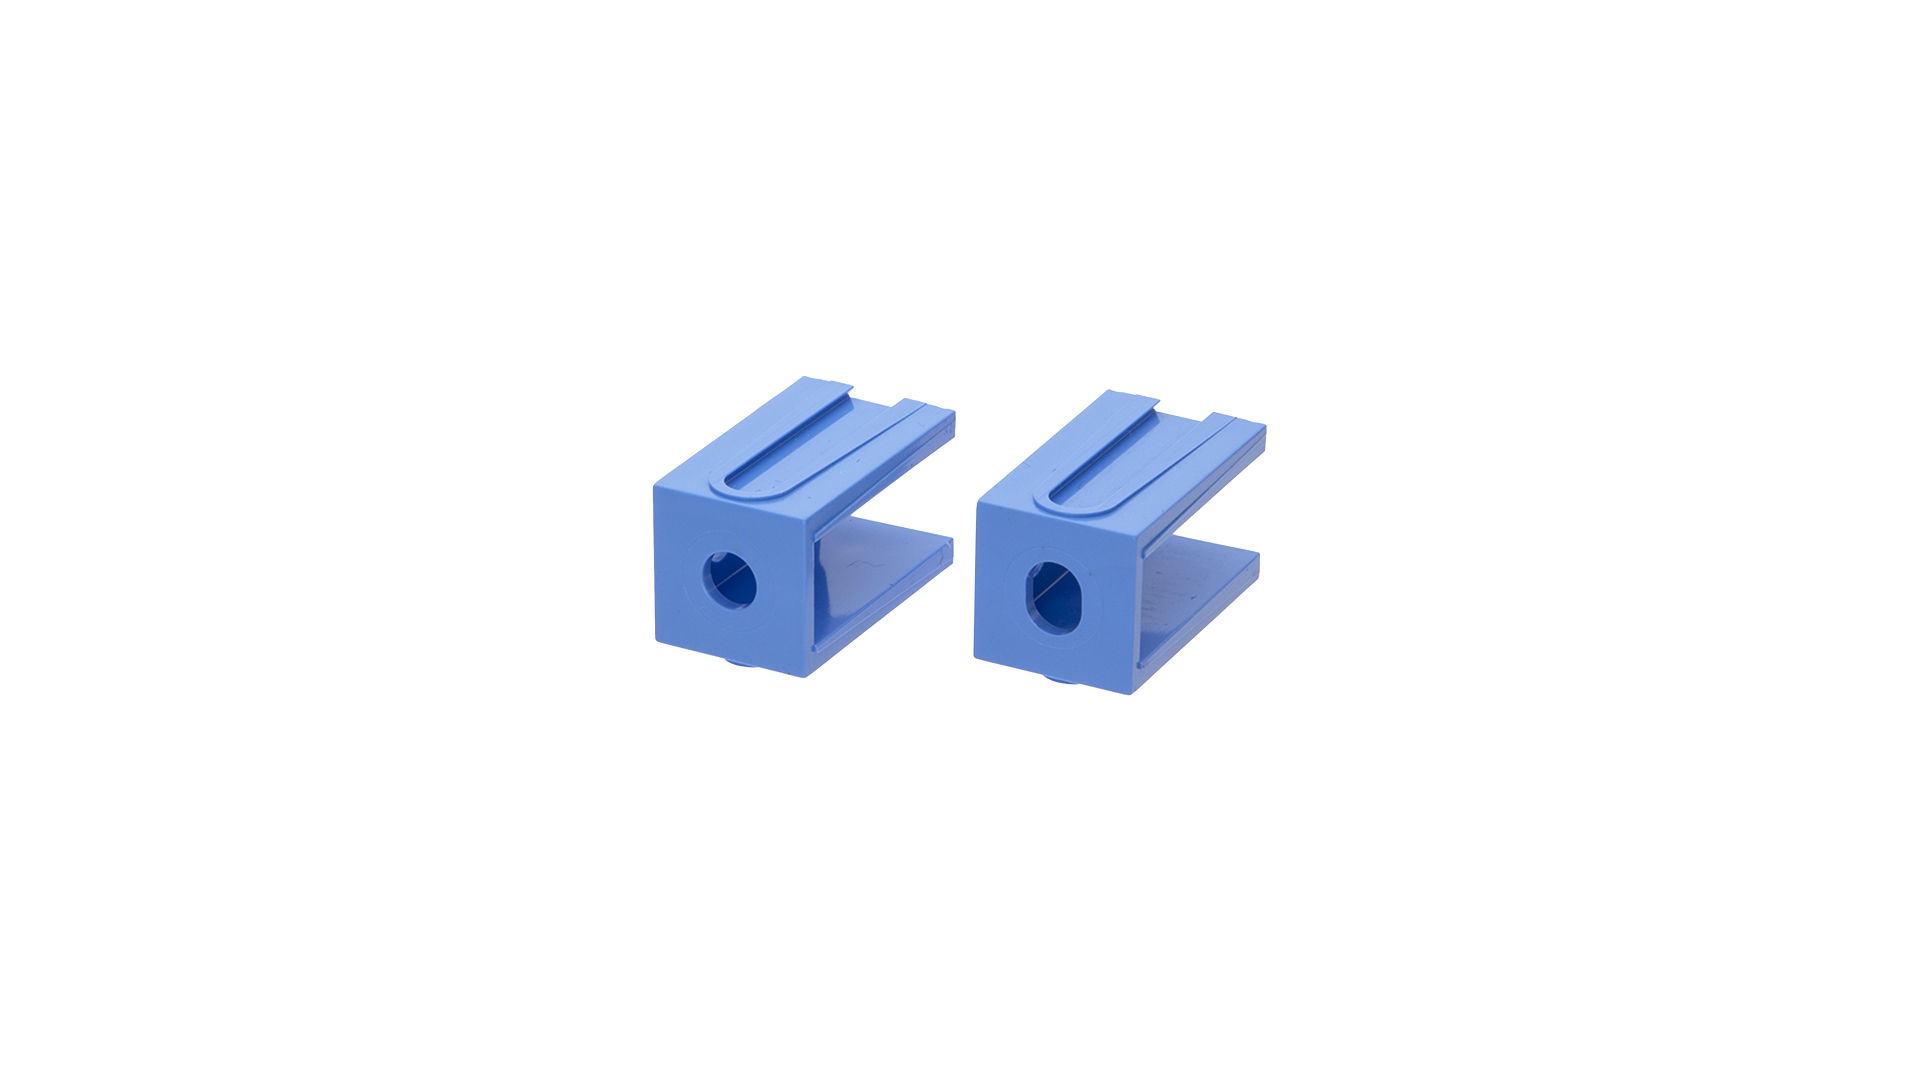 PP75 Accessories Mounting Wing for Standard or CR Housings